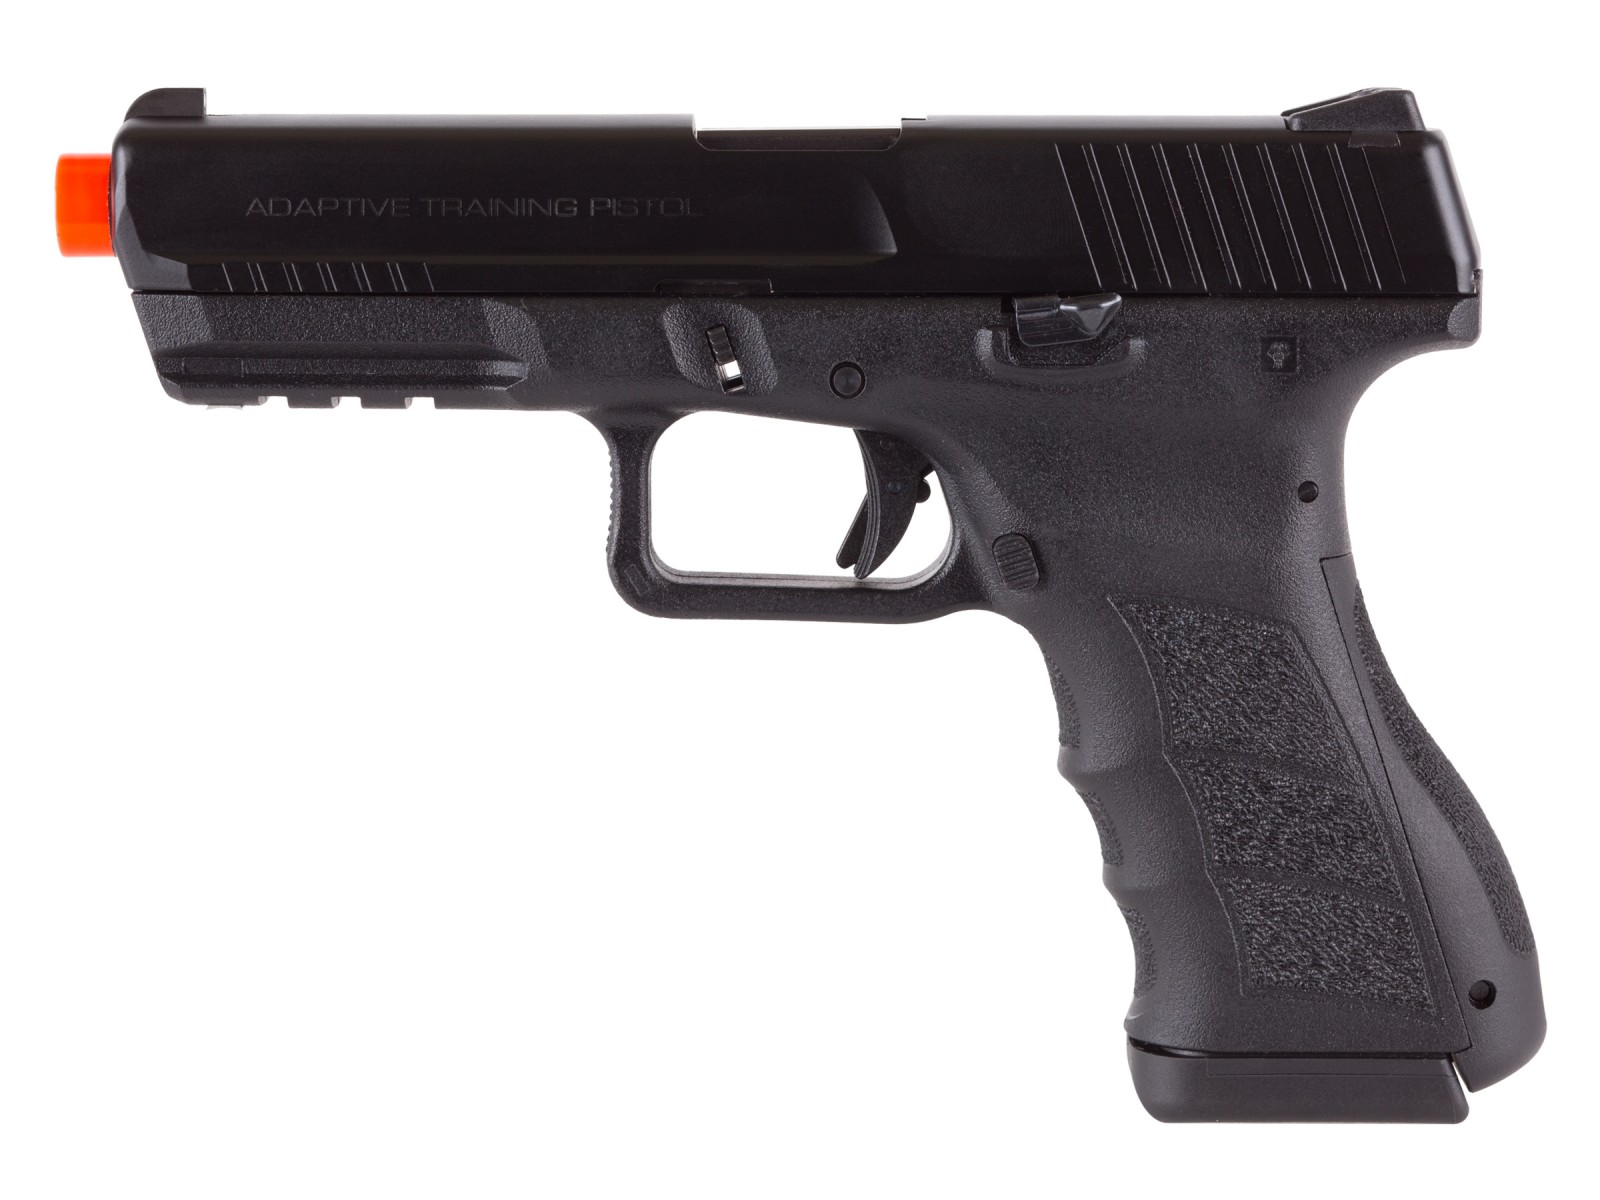 KWA ATP Adaptive Training GBB Airsoft Pistol 6mm Image